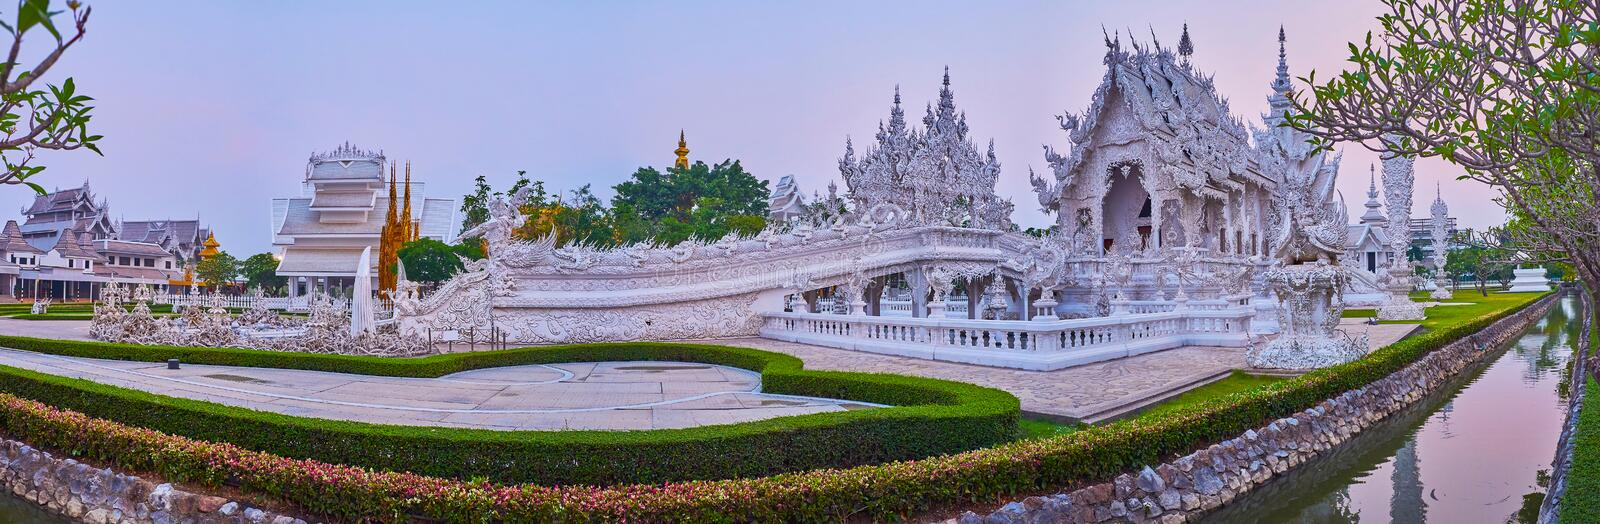 Panorama of White Temple and Rebirth Cycle bridge, Chiang Rai, Thailand. Evening panorama of White Temple complex with narrow moat, topiary garden, Rebirth Cycle royalty free stock image